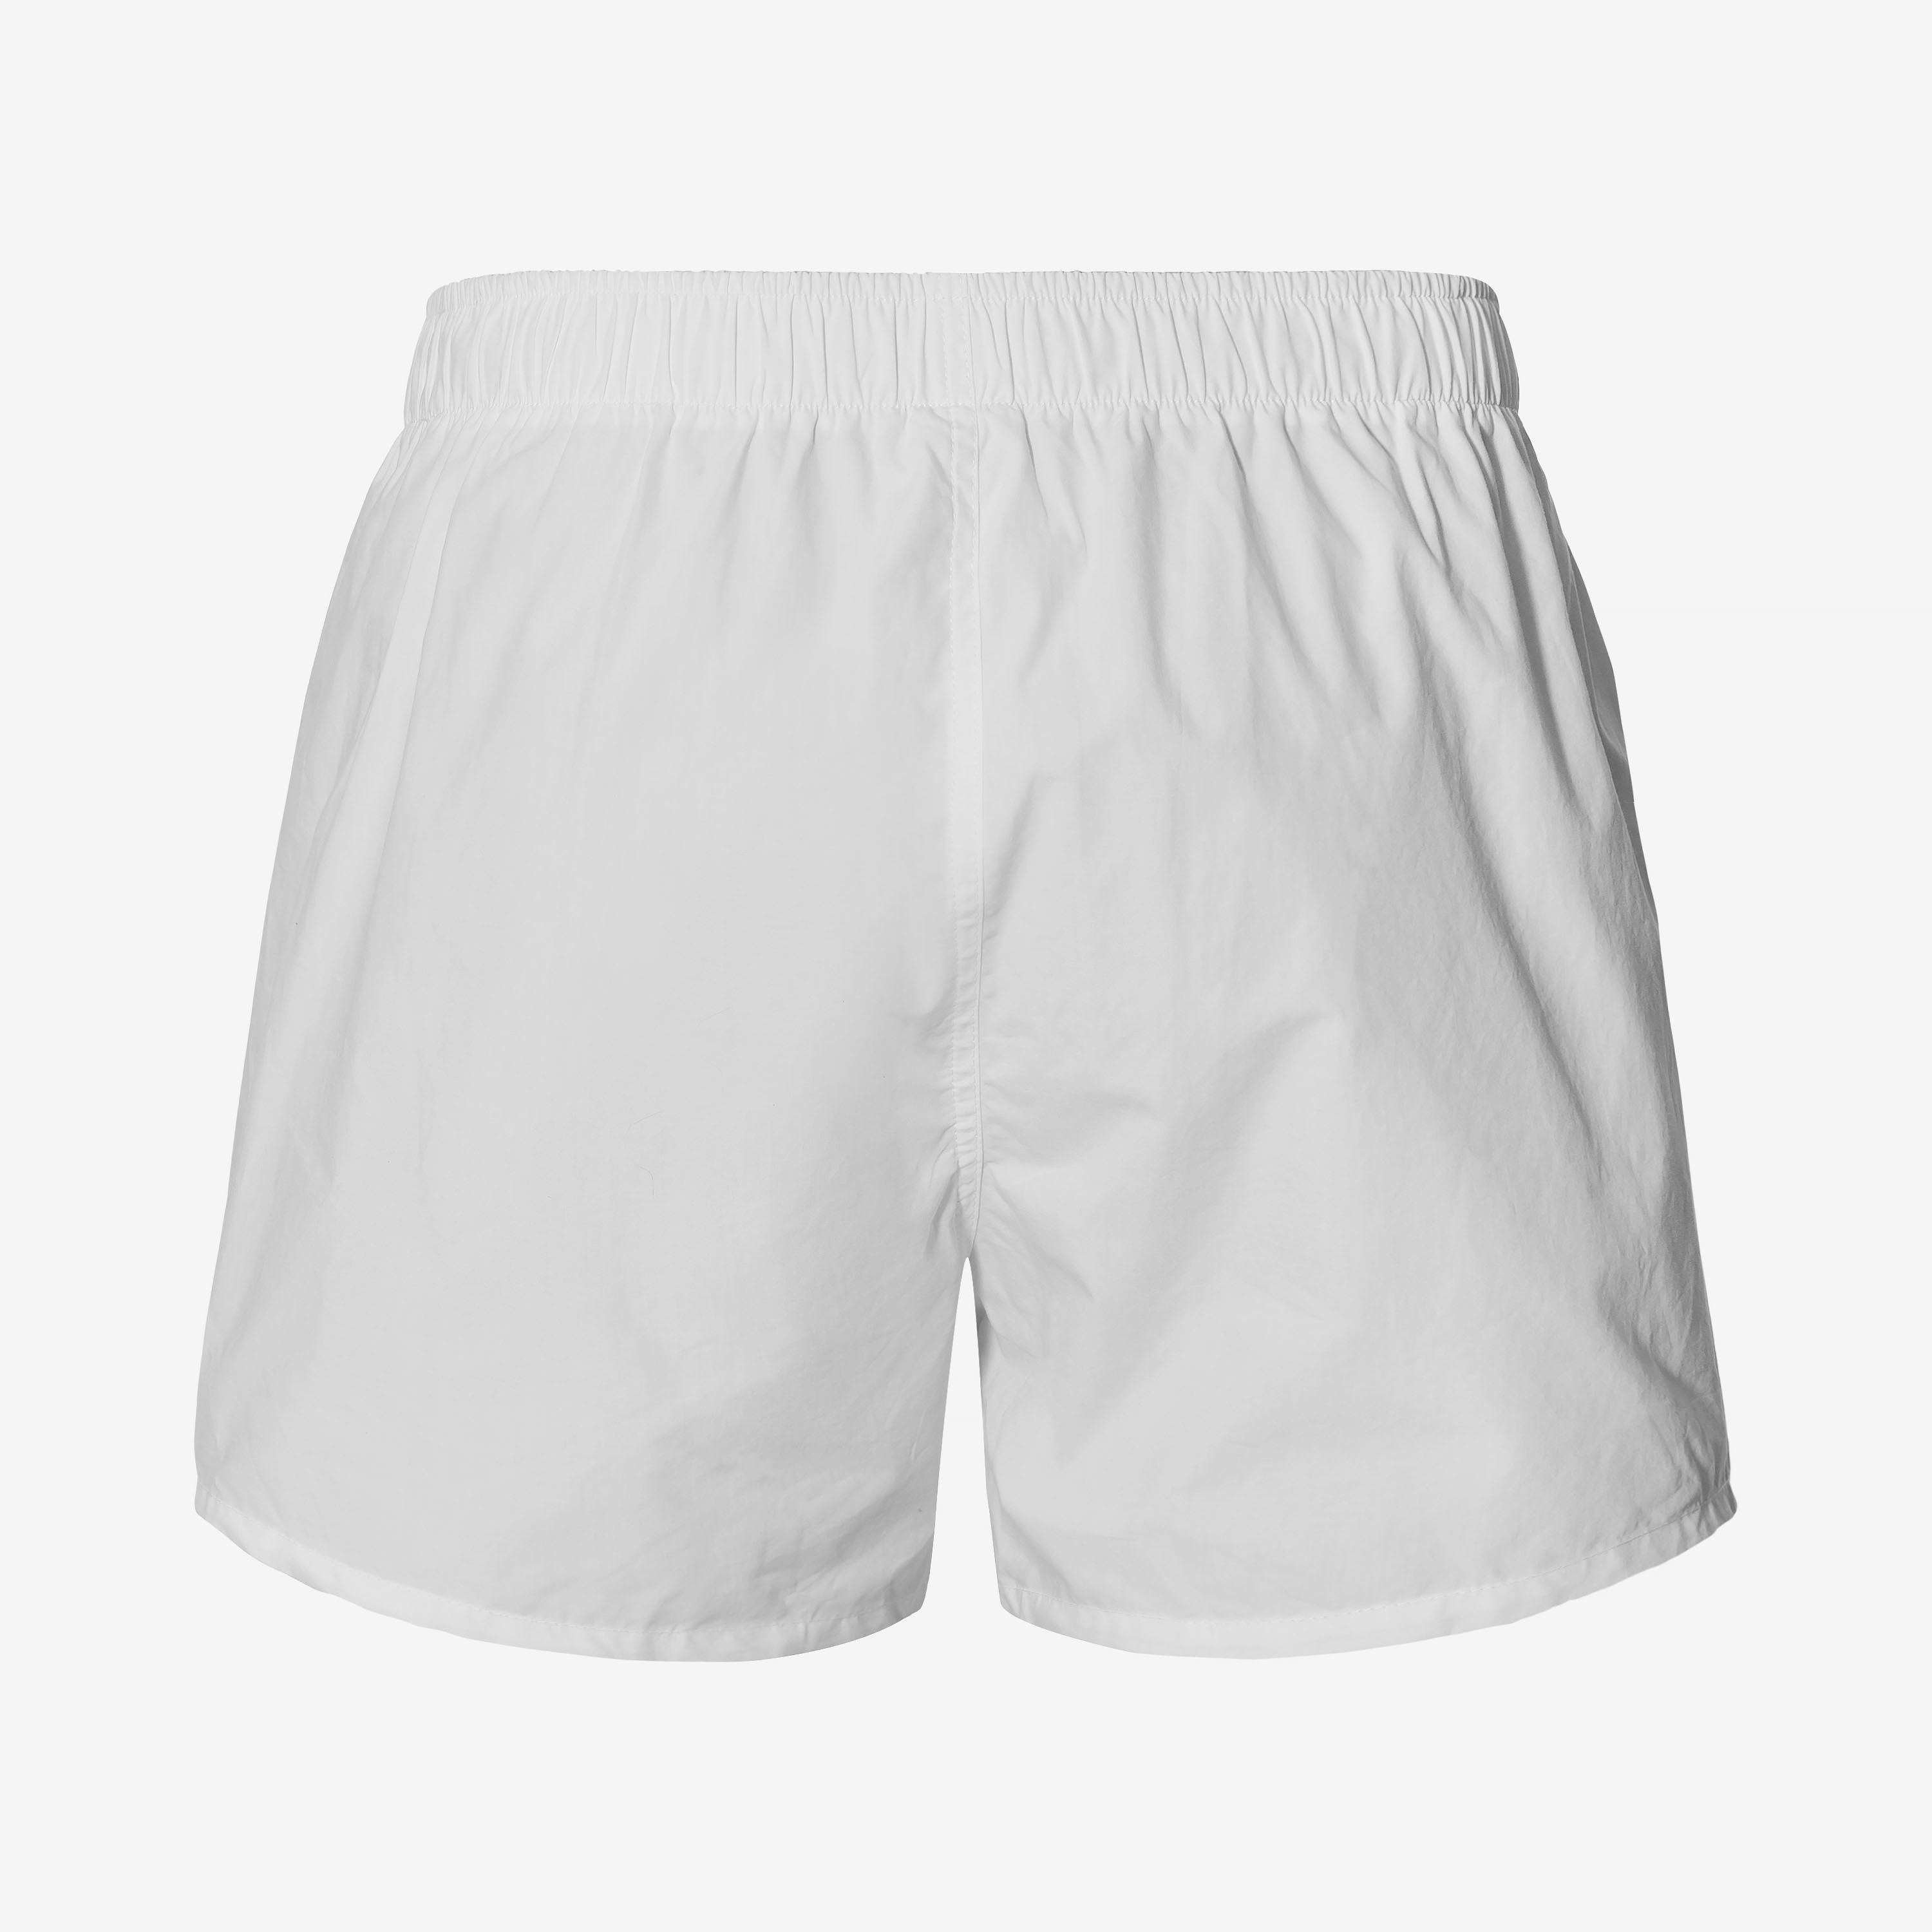 203201_Man_Boxer-Short_white_CO-B